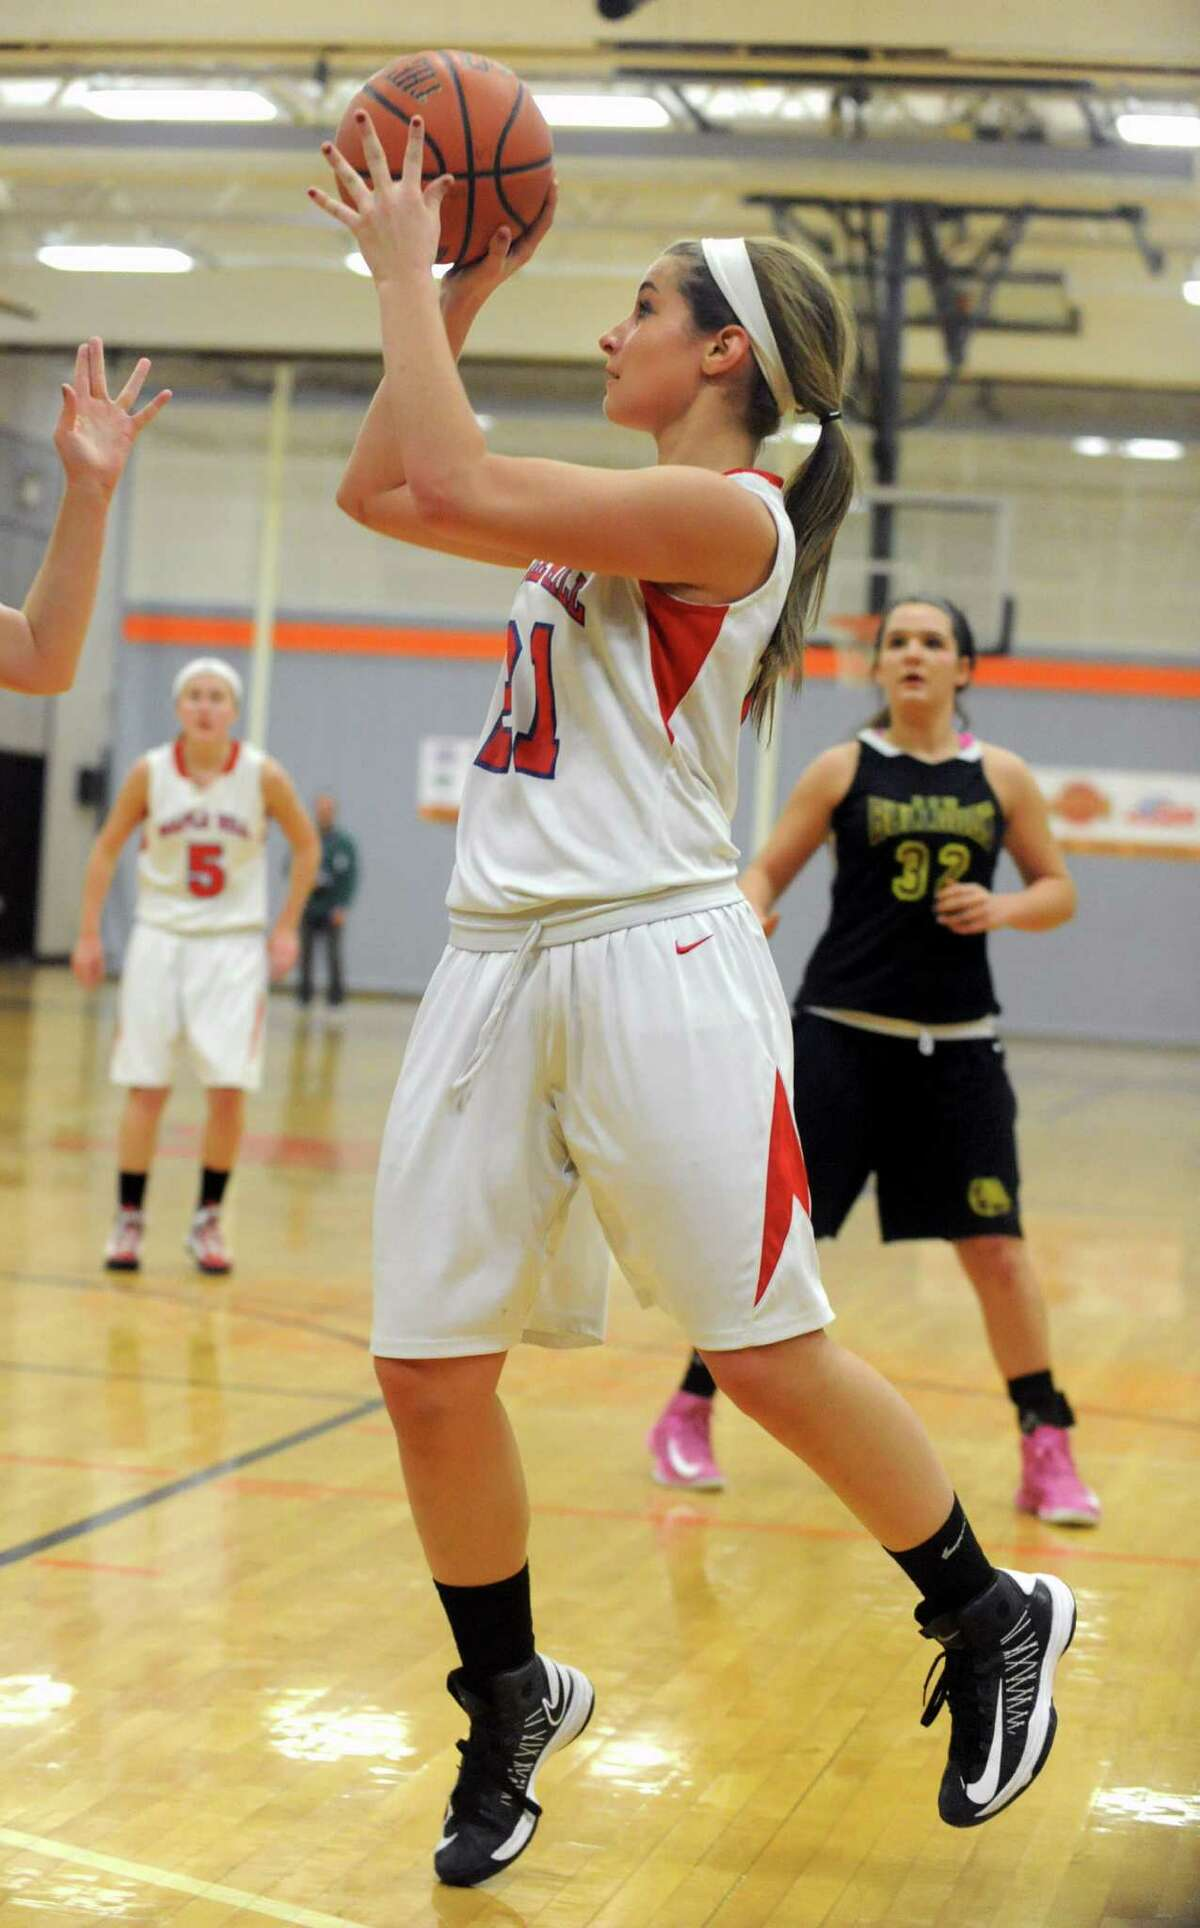 Maple Hills' Bella Nelson goes up for a jump shot during a basketball game against Berne Knox at Mohonasen High School on Friday Dec. 28, 2012 in Albany, N.Y. (Lori Van Buren / Times Union)